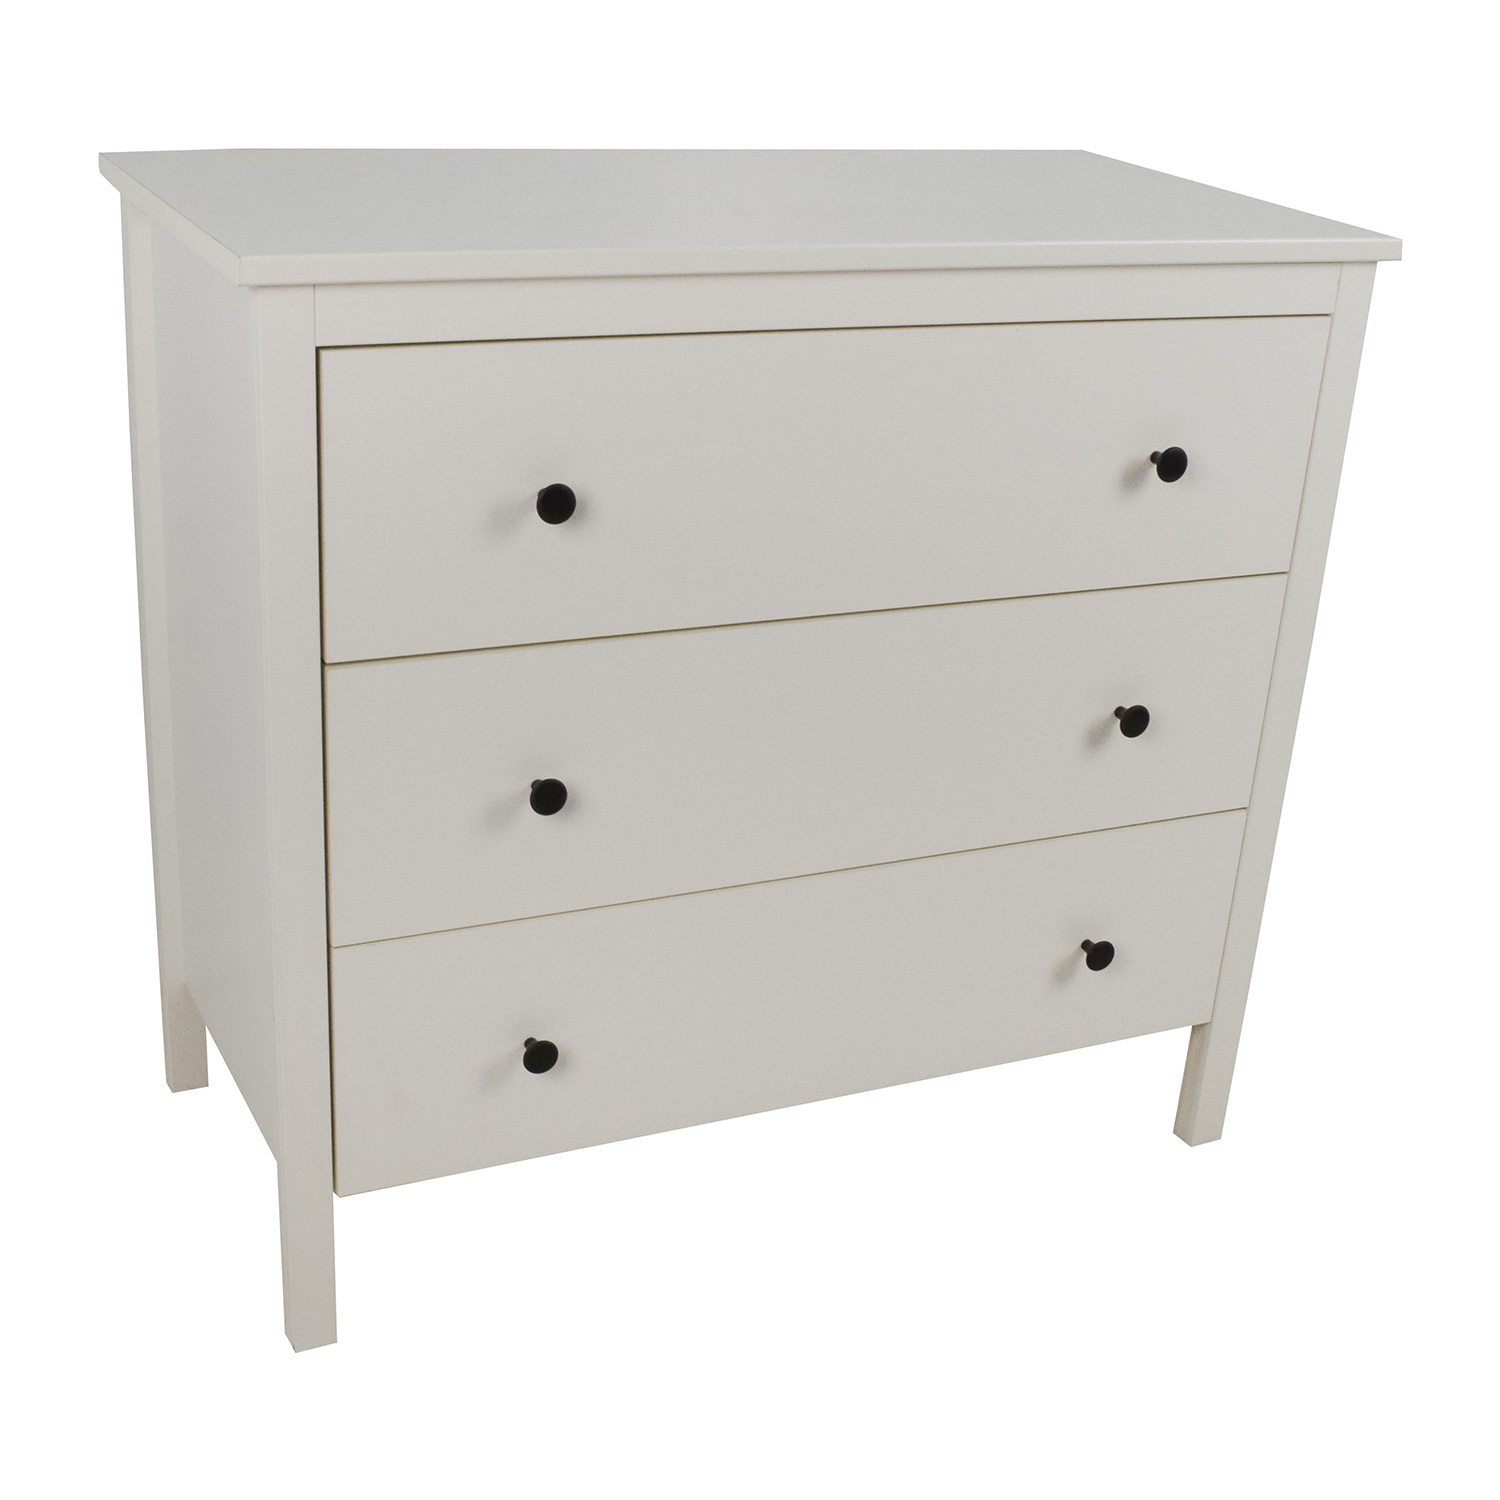 Off ikea hemnes drawer white dresser storage